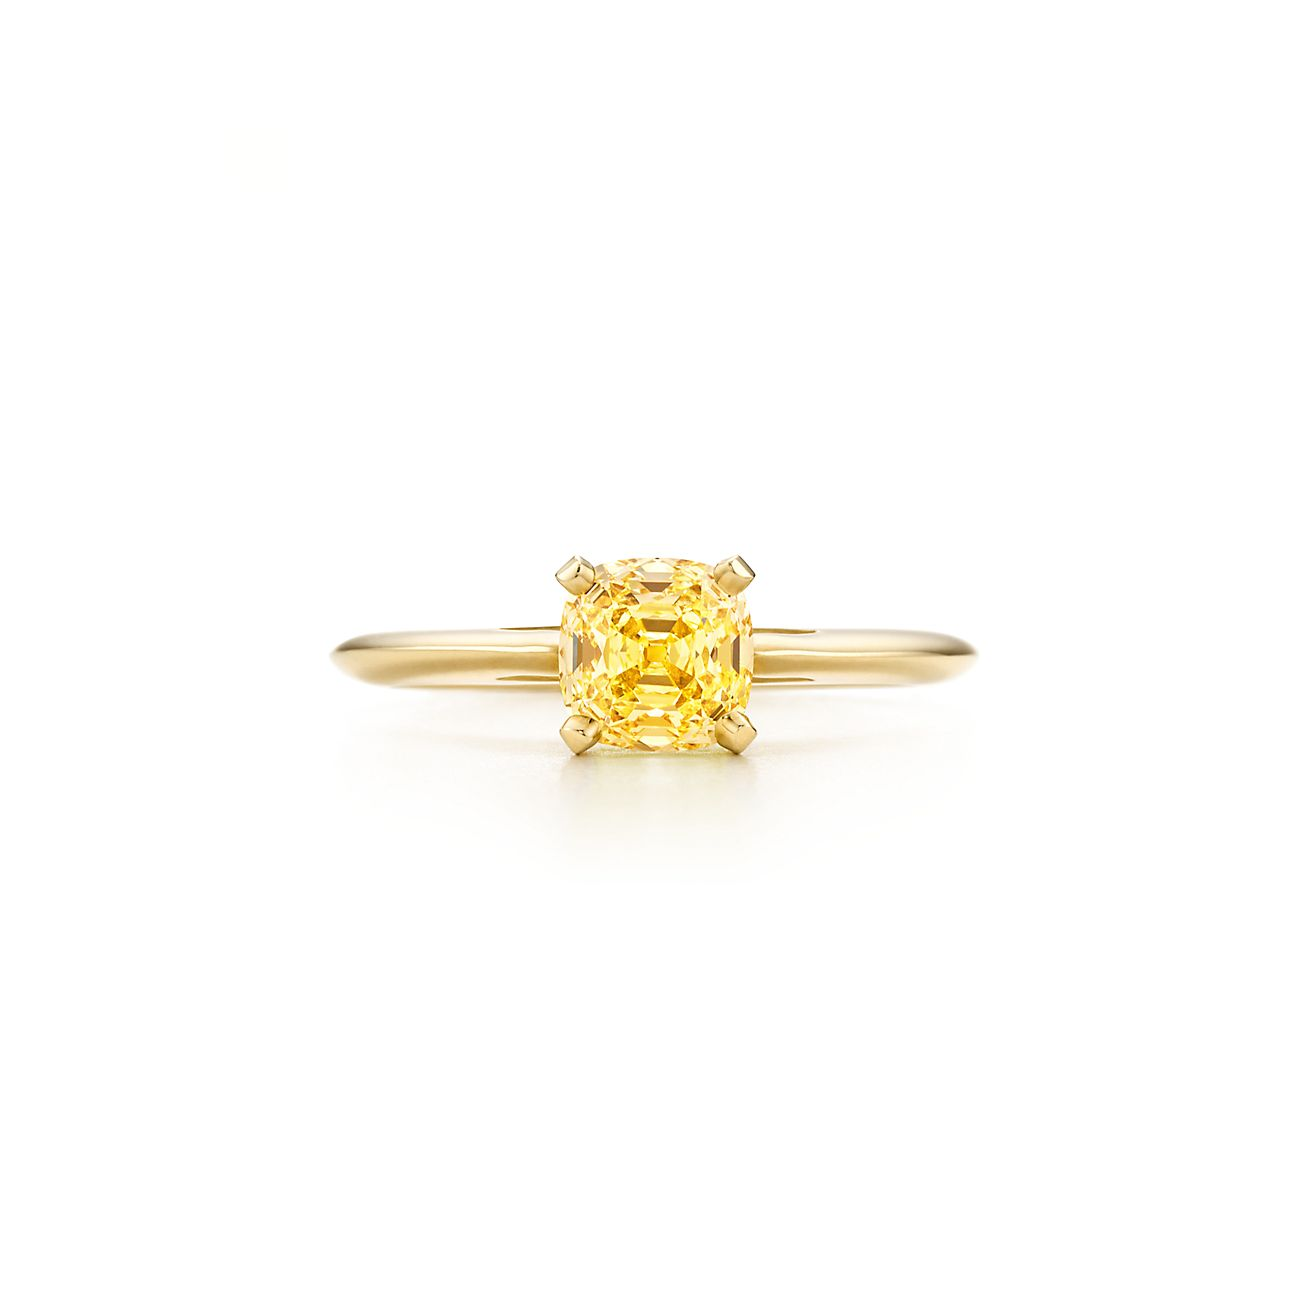 ring in 18k gold with a square antique modified brilliant